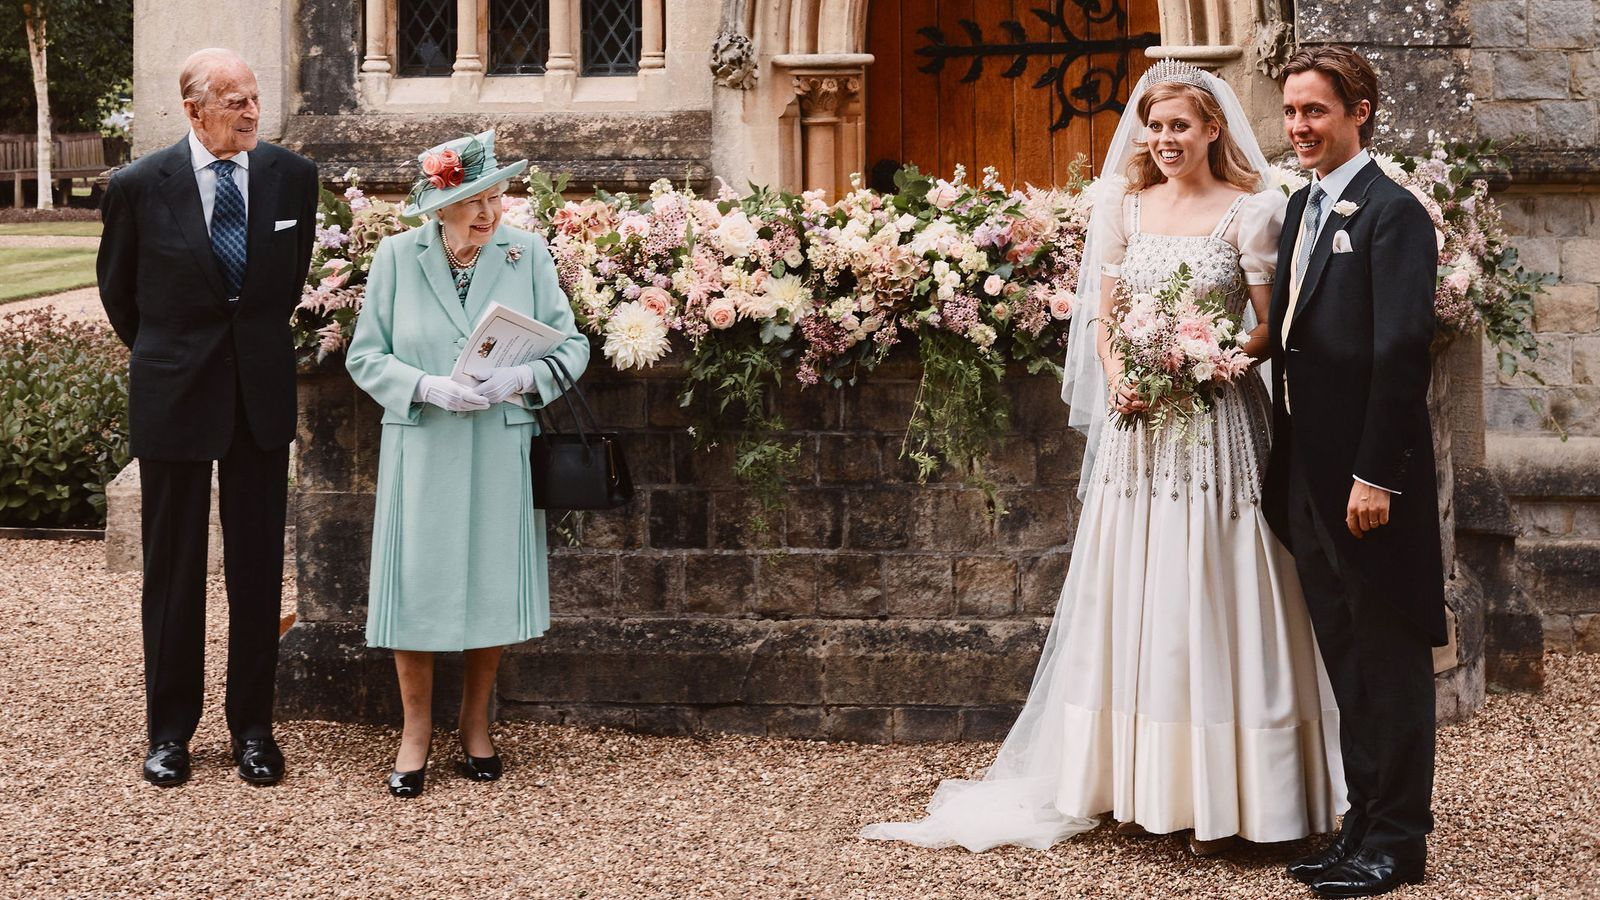 Princess Beatrice wedding First photos from ceremony show